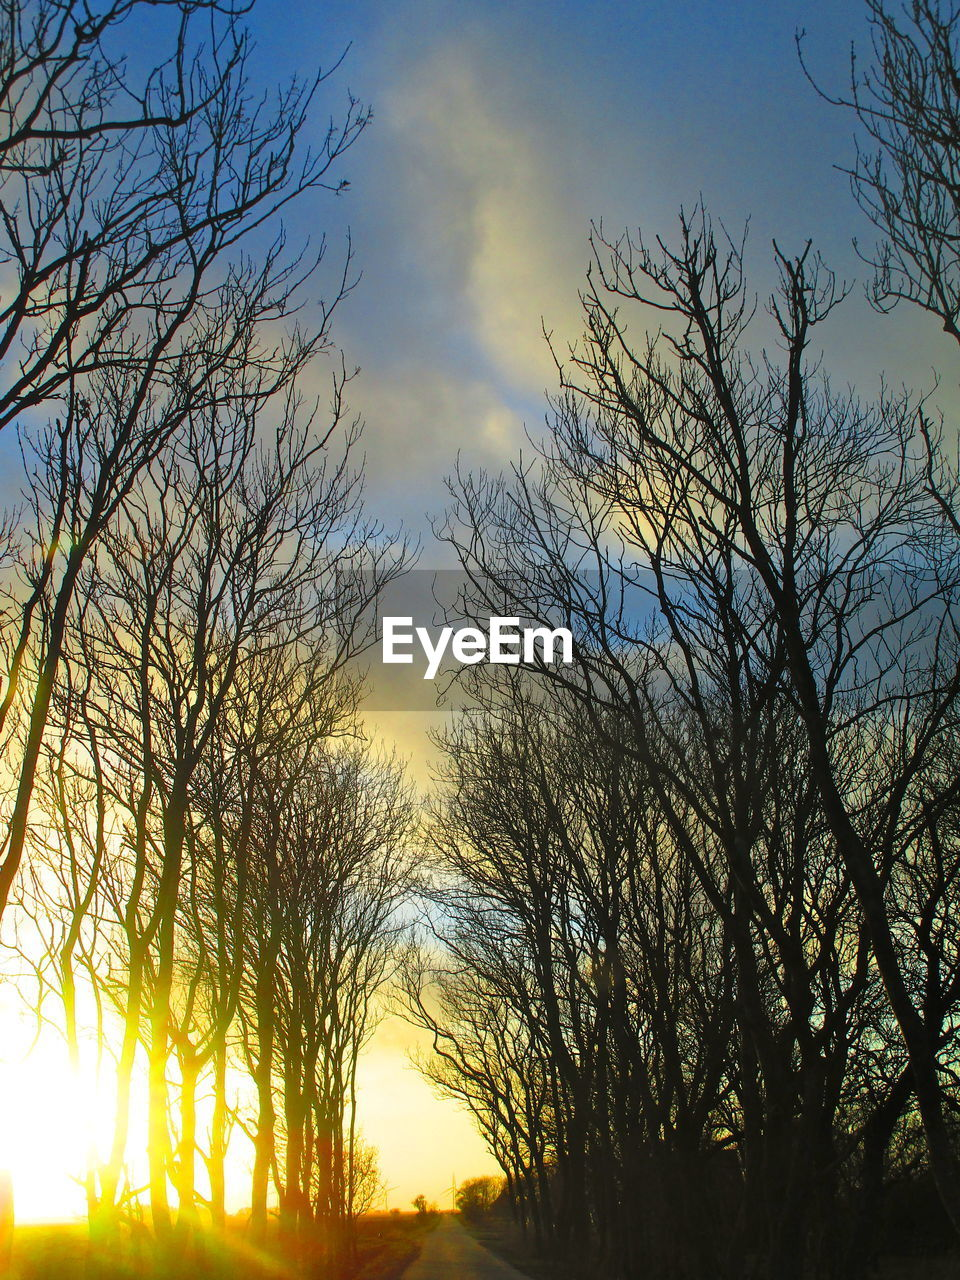 sky, tree, sunset, plant, beauty in nature, tranquility, silhouette, scenics - nature, bare tree, cloud - sky, branch, tranquil scene, no people, nature, low angle view, orange color, outdoors, non-urban scene, sunlight, growth